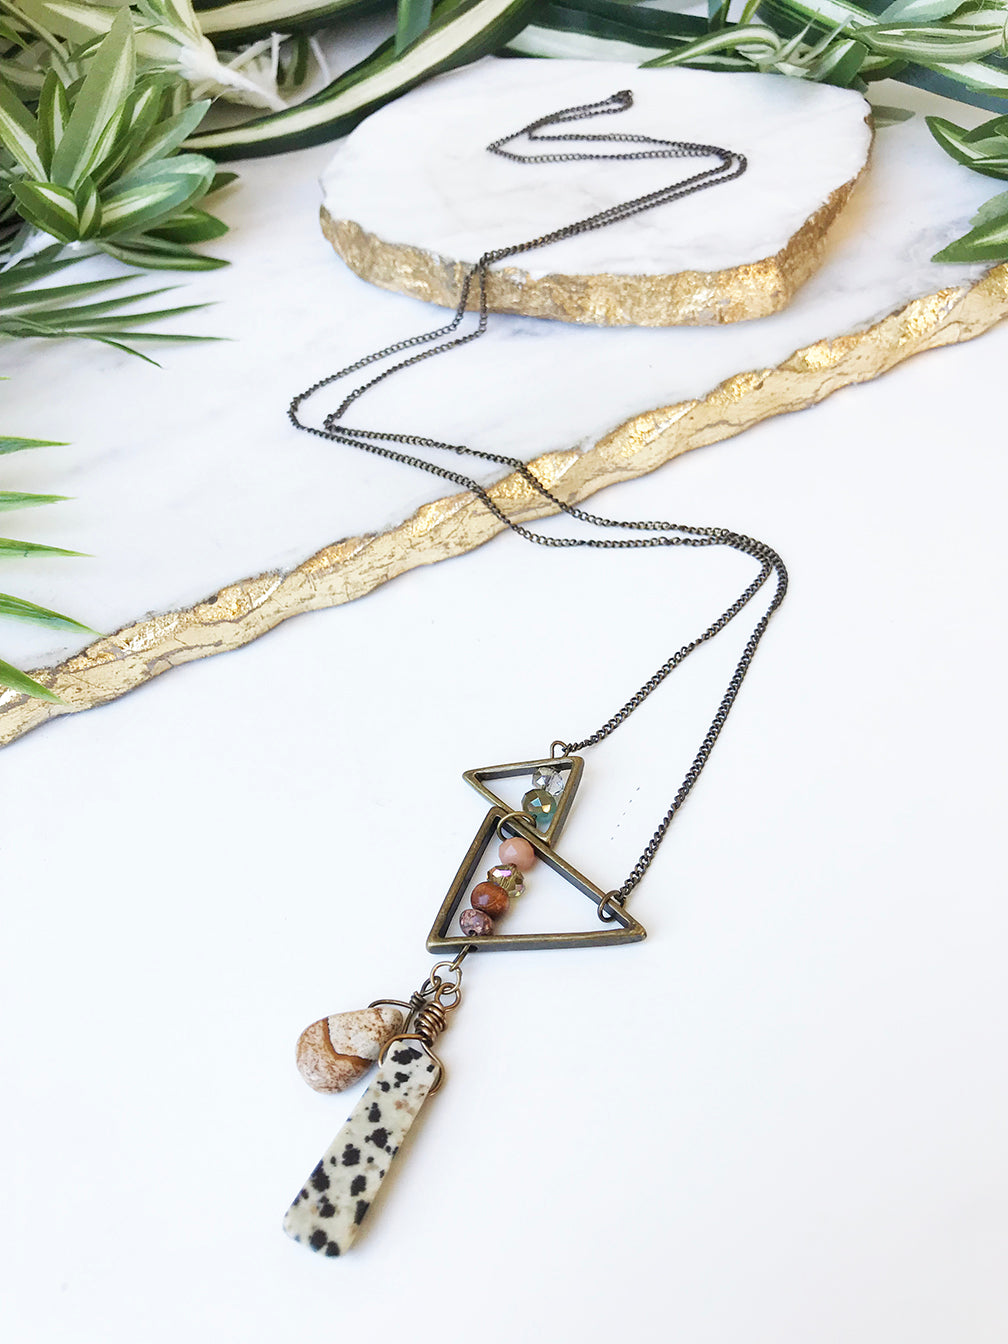 rebel necklace - RB-022-NL